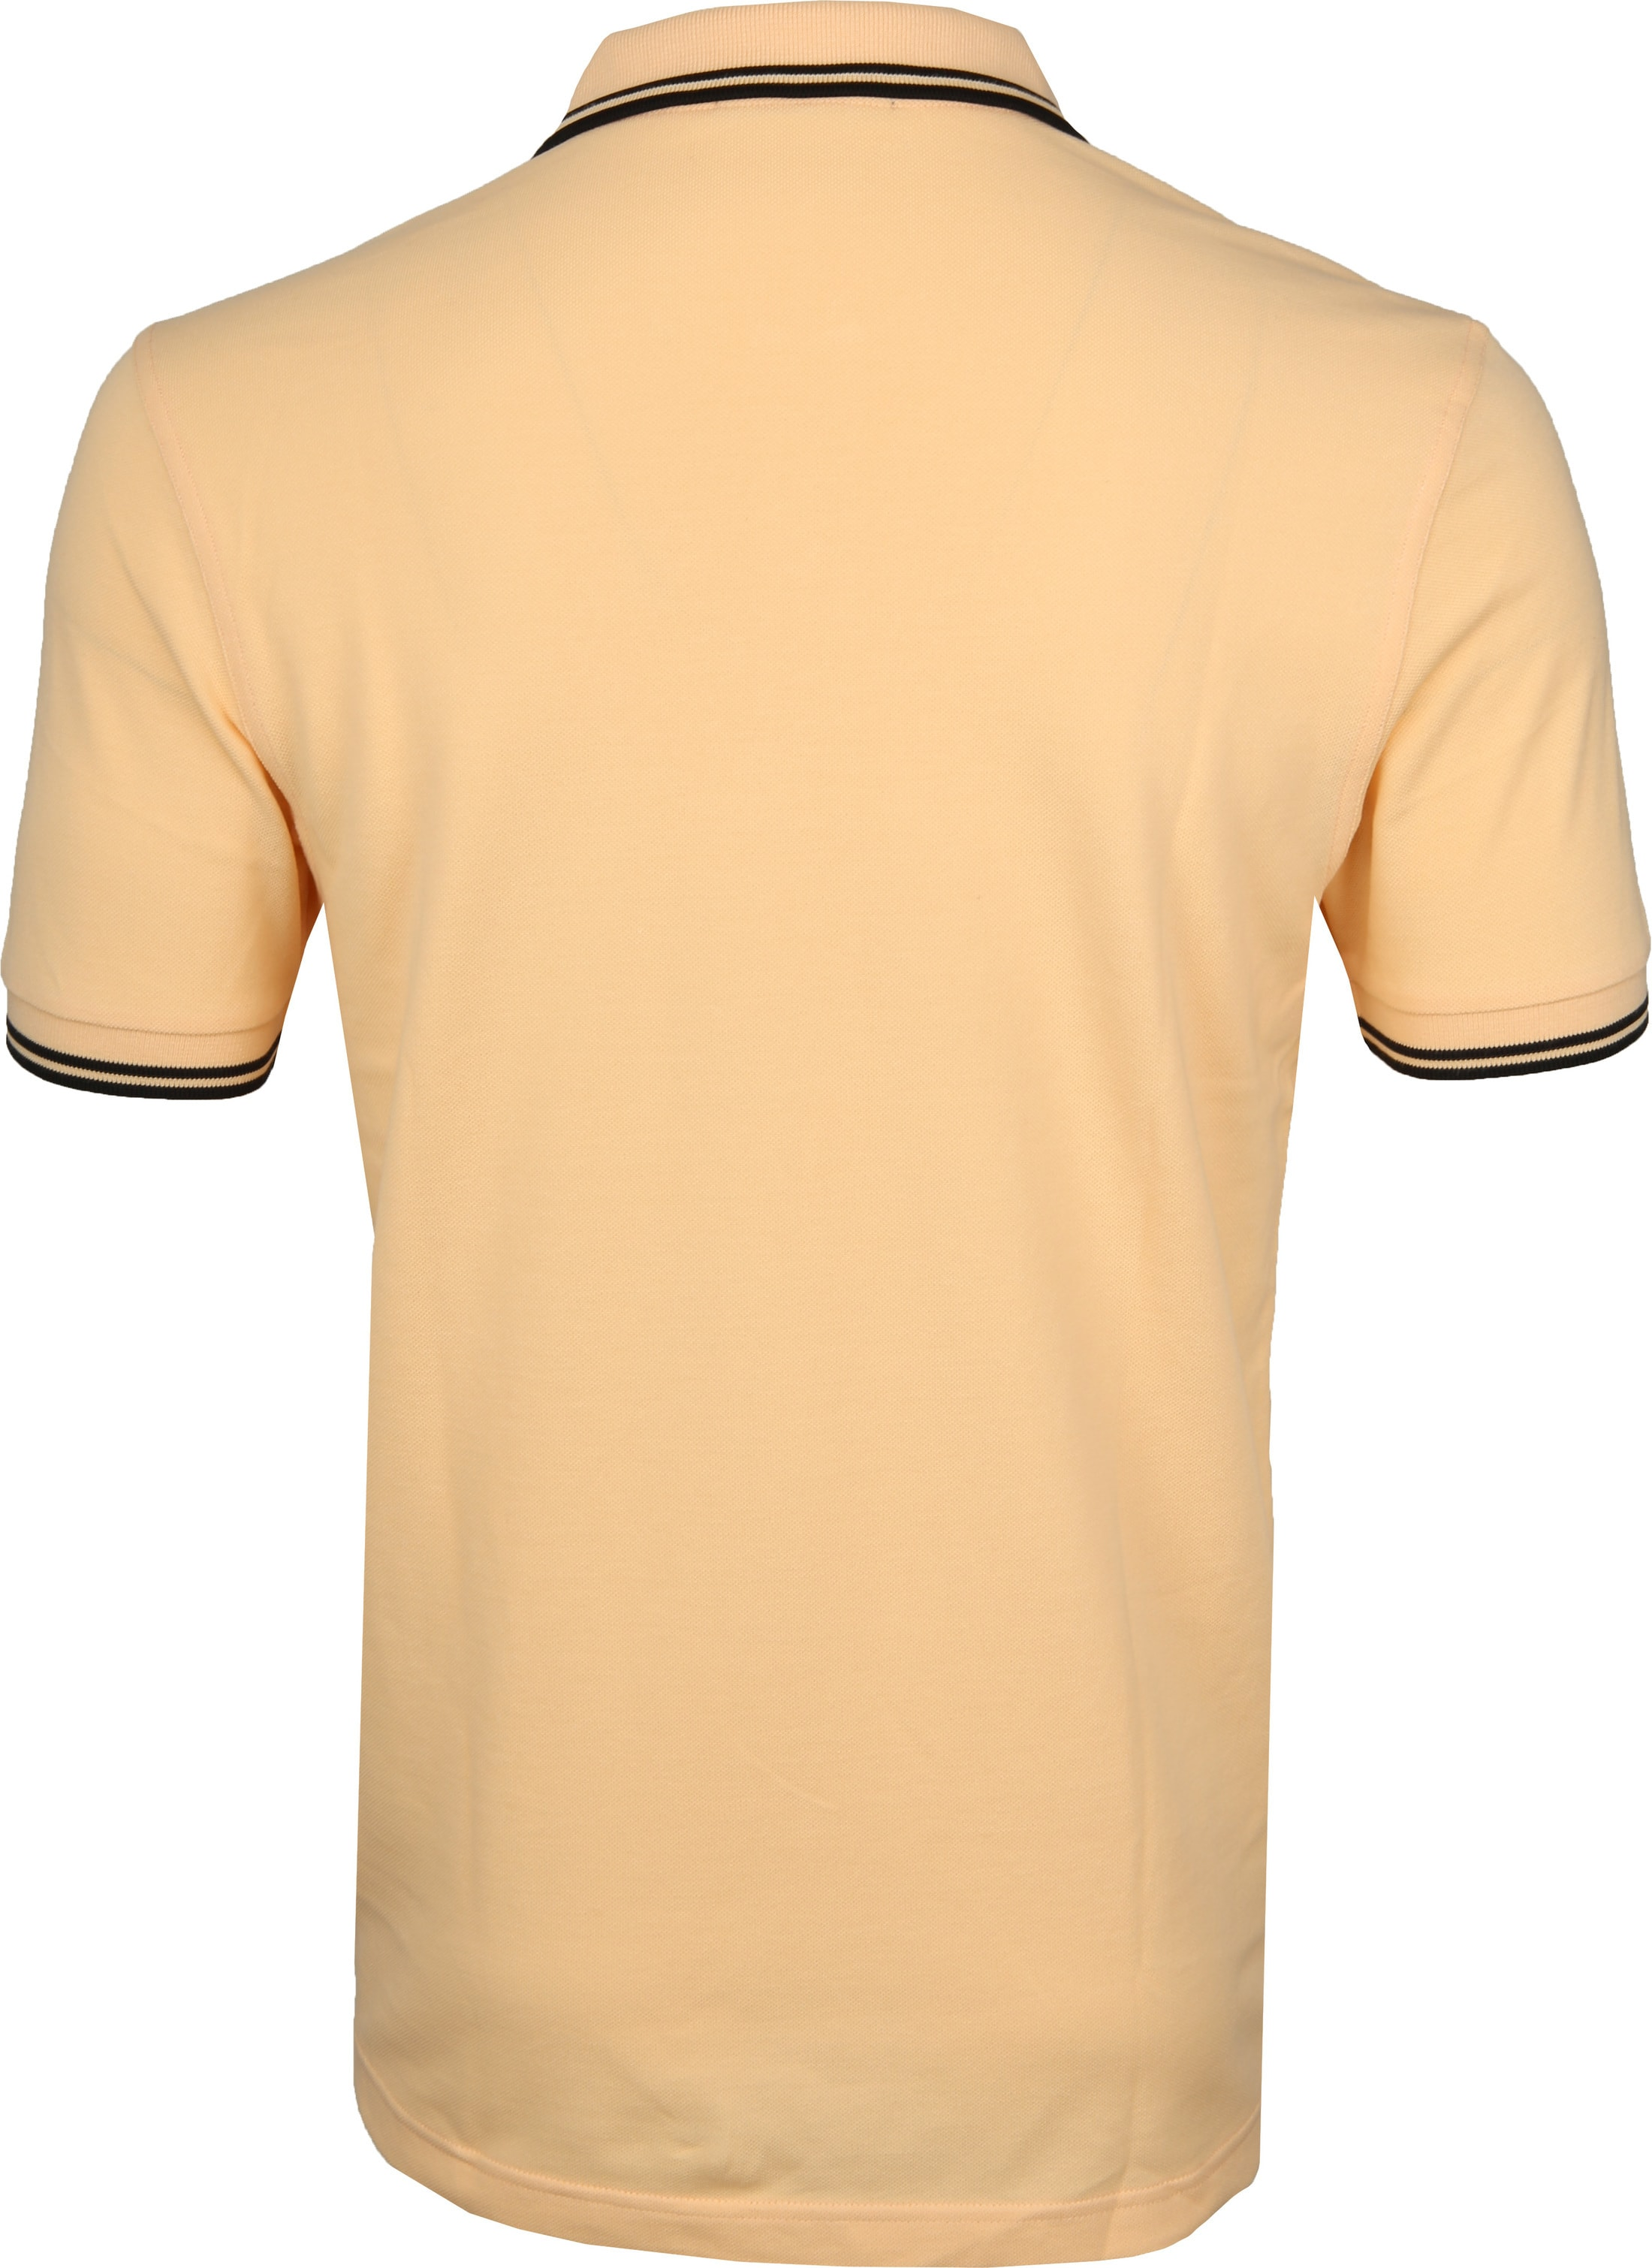 Fred Perry Poloshirt Yellow I07 foto 2